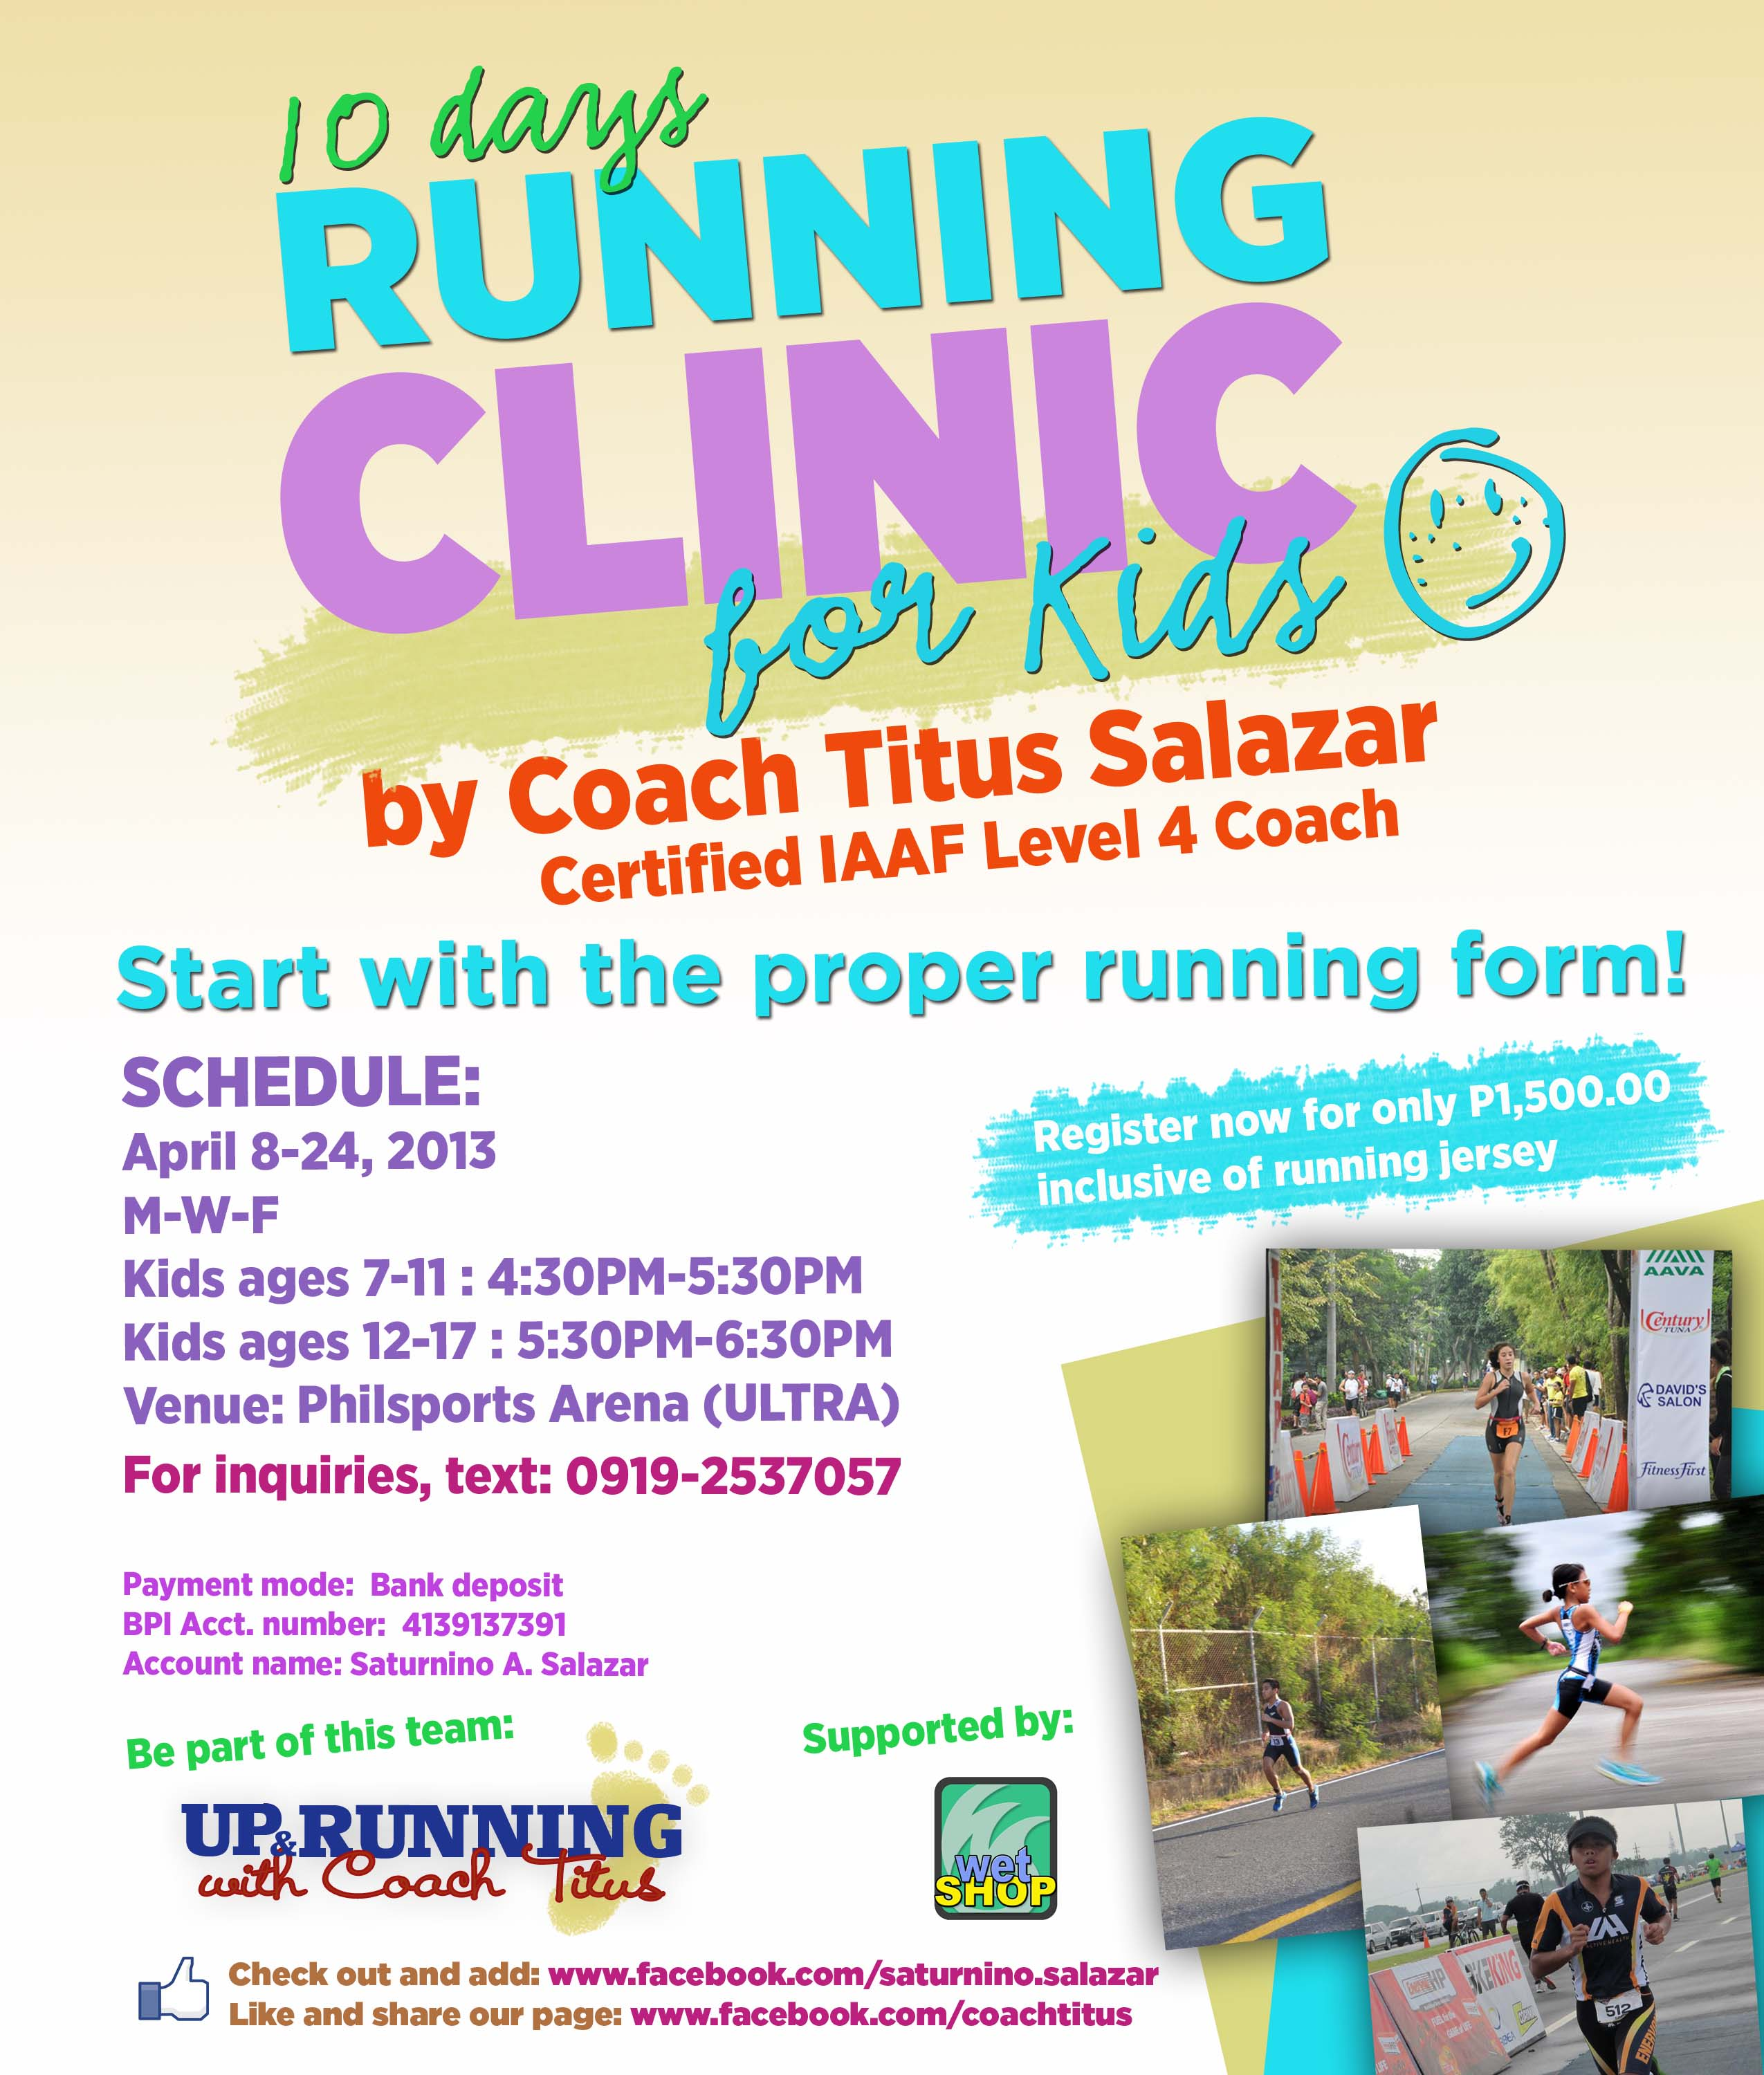 10-days-running-clinics-for-kids-2013-poster